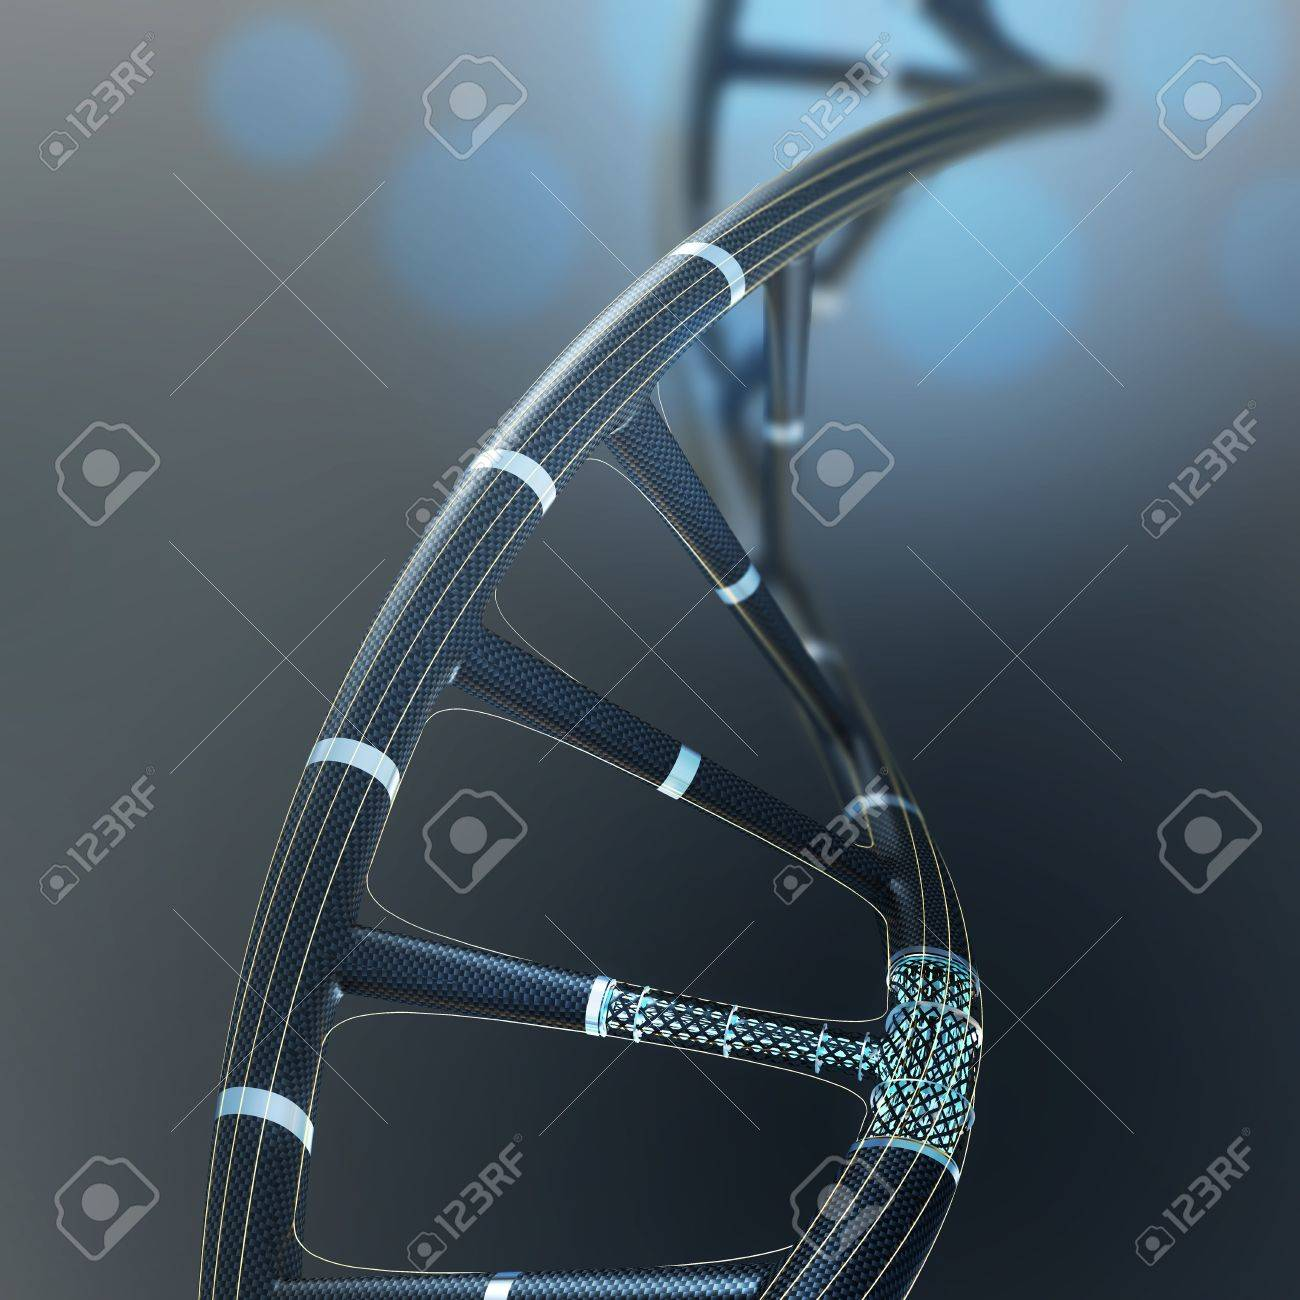 Artificial DNA molecule, the concept of artificial intelligence, on a dark background - 51350971